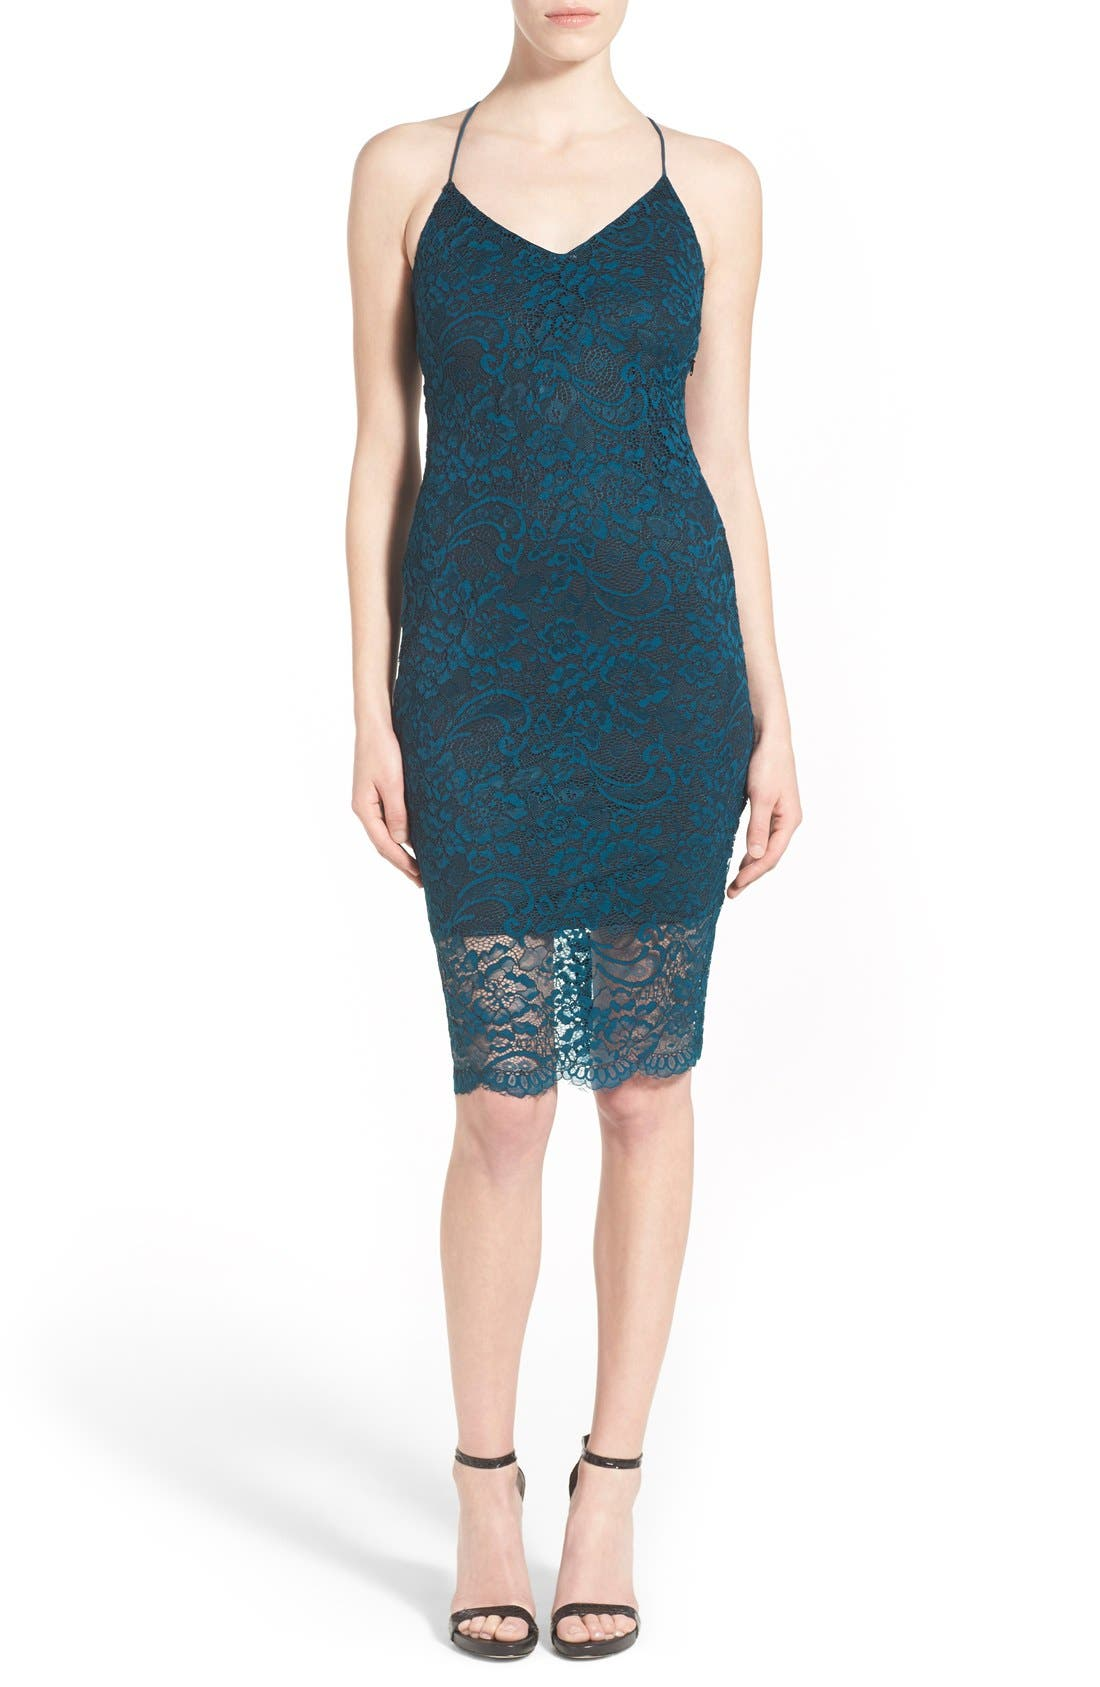 Main Image - Lovers + Friends 'Romance Me' Strappy Back Lace Dress